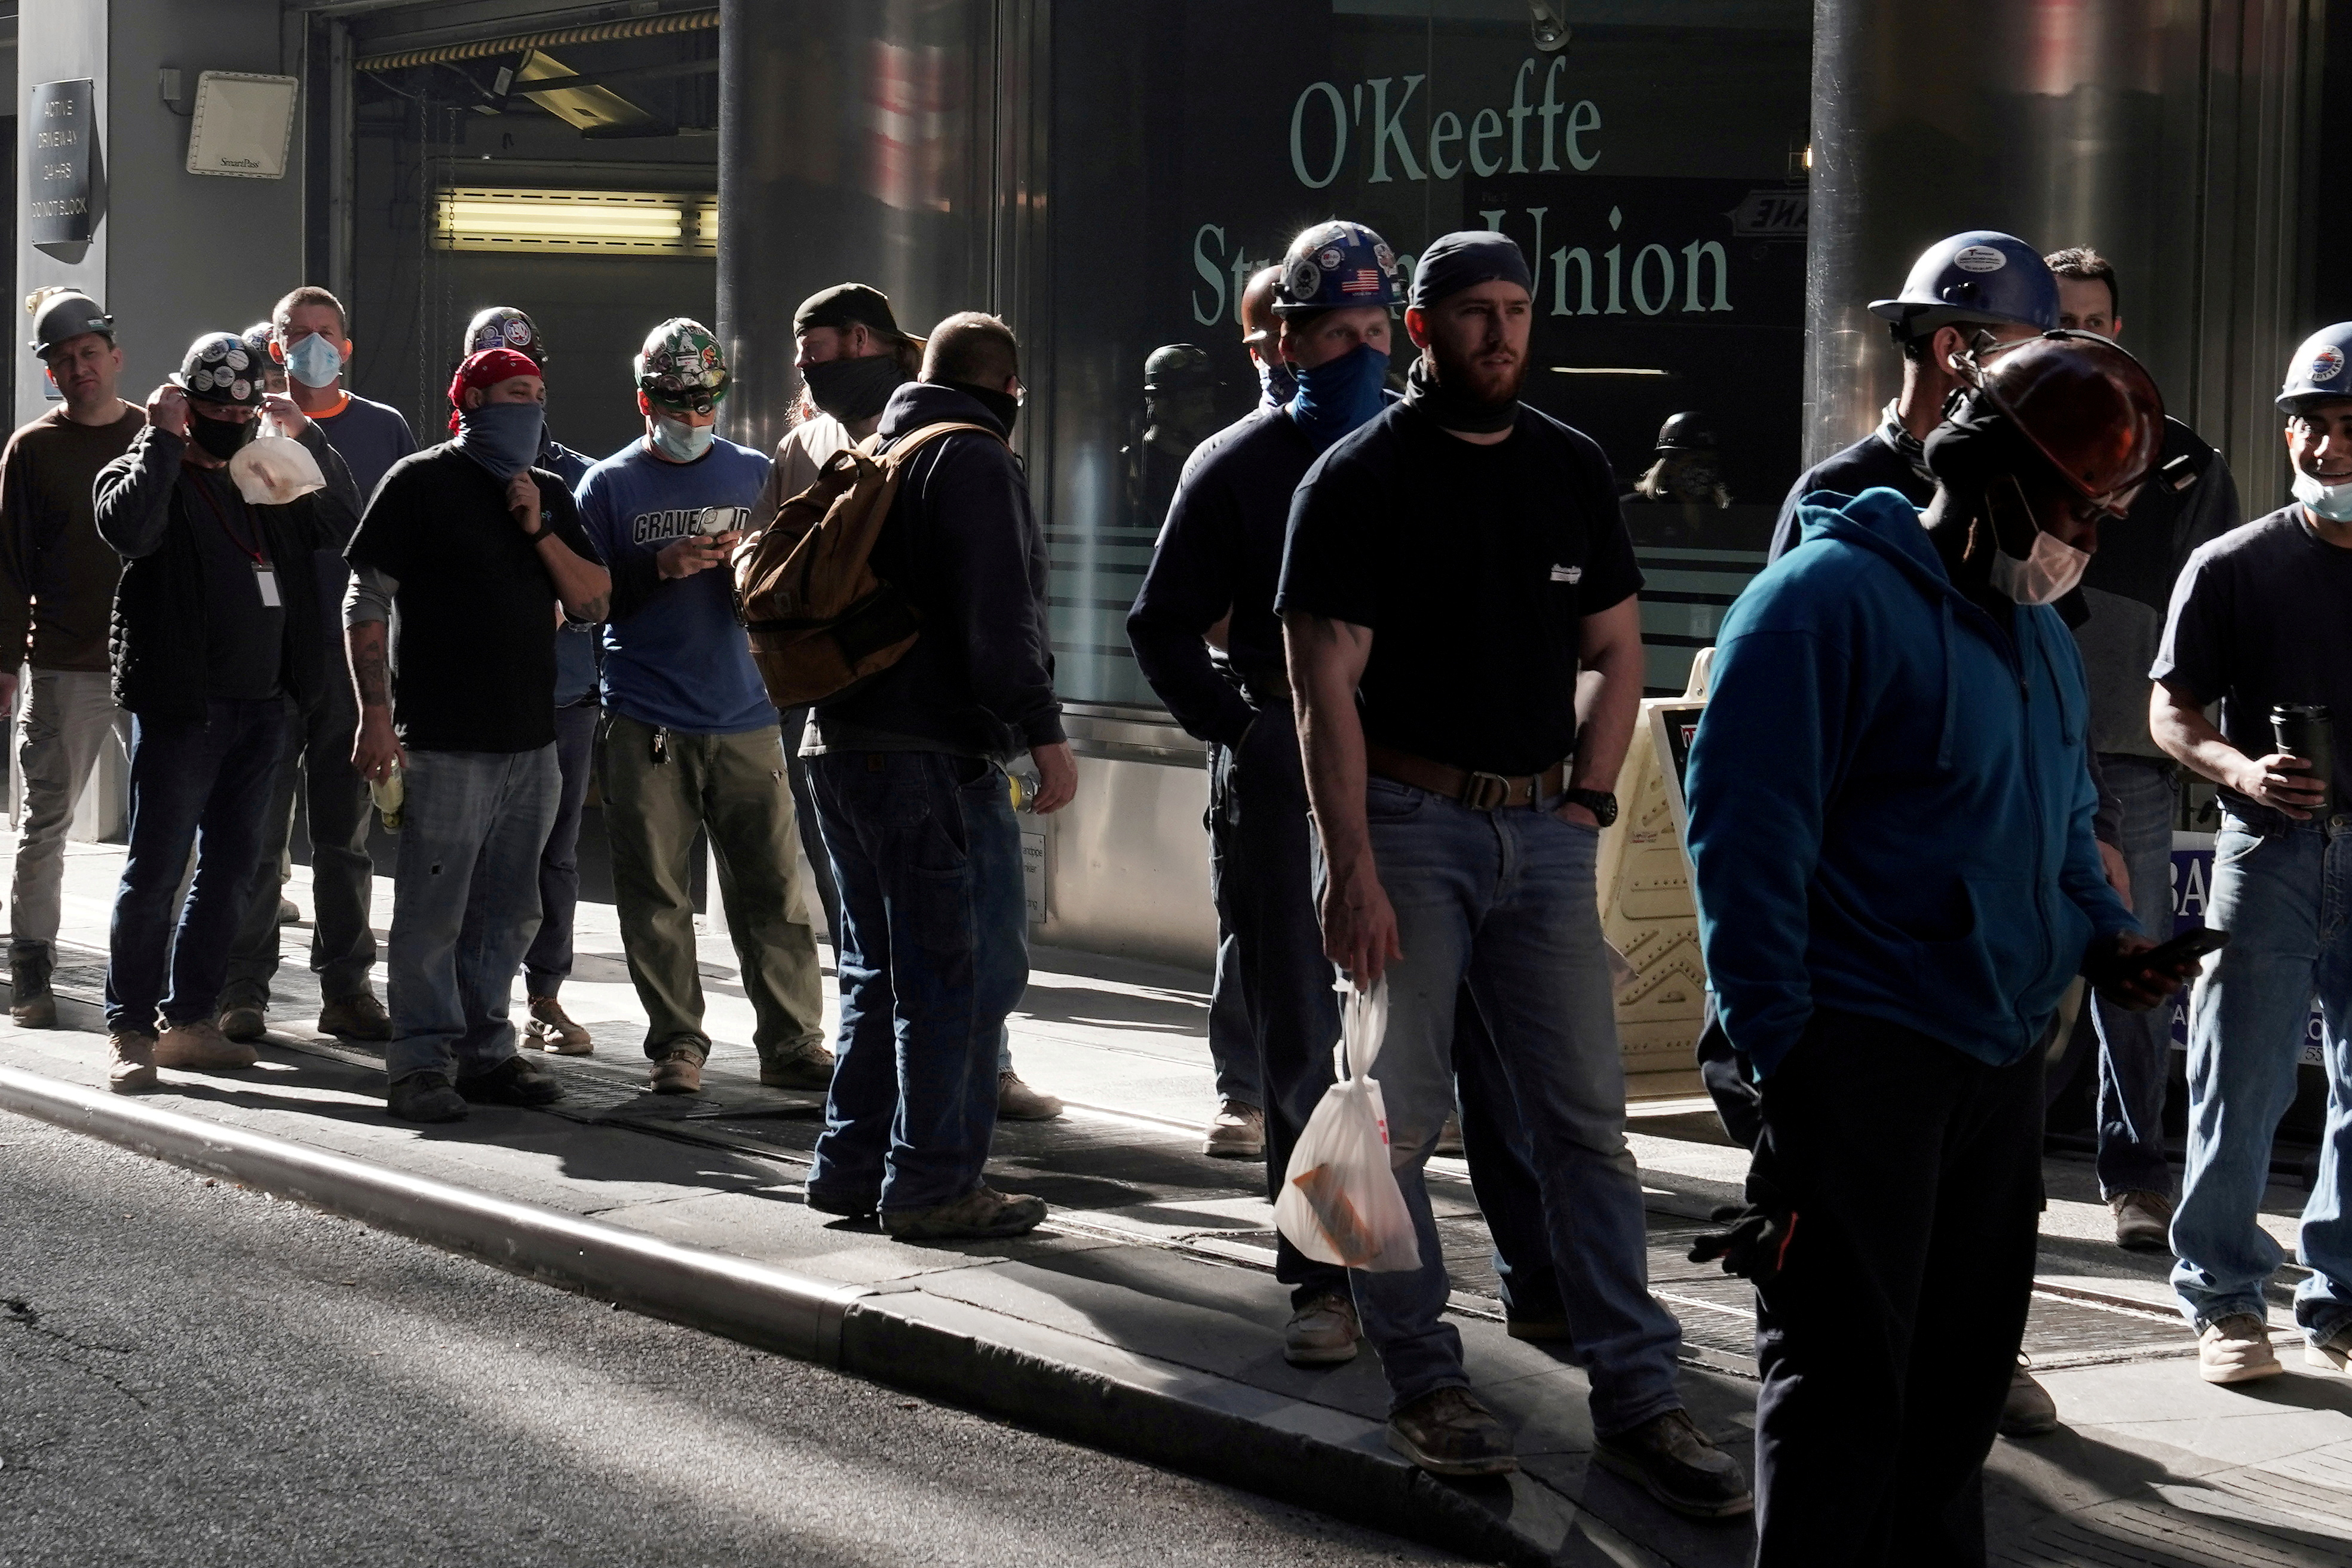 Construction workers wait in line to do a temperature test to return to the job site after lunch, amid the coronavirus disease (COVID-19) outbreak, in the Manhattan borough of New York City, New York, U.S., November 10, 2020. REUTERS/Carlo Allegri/File Photo/File Photo